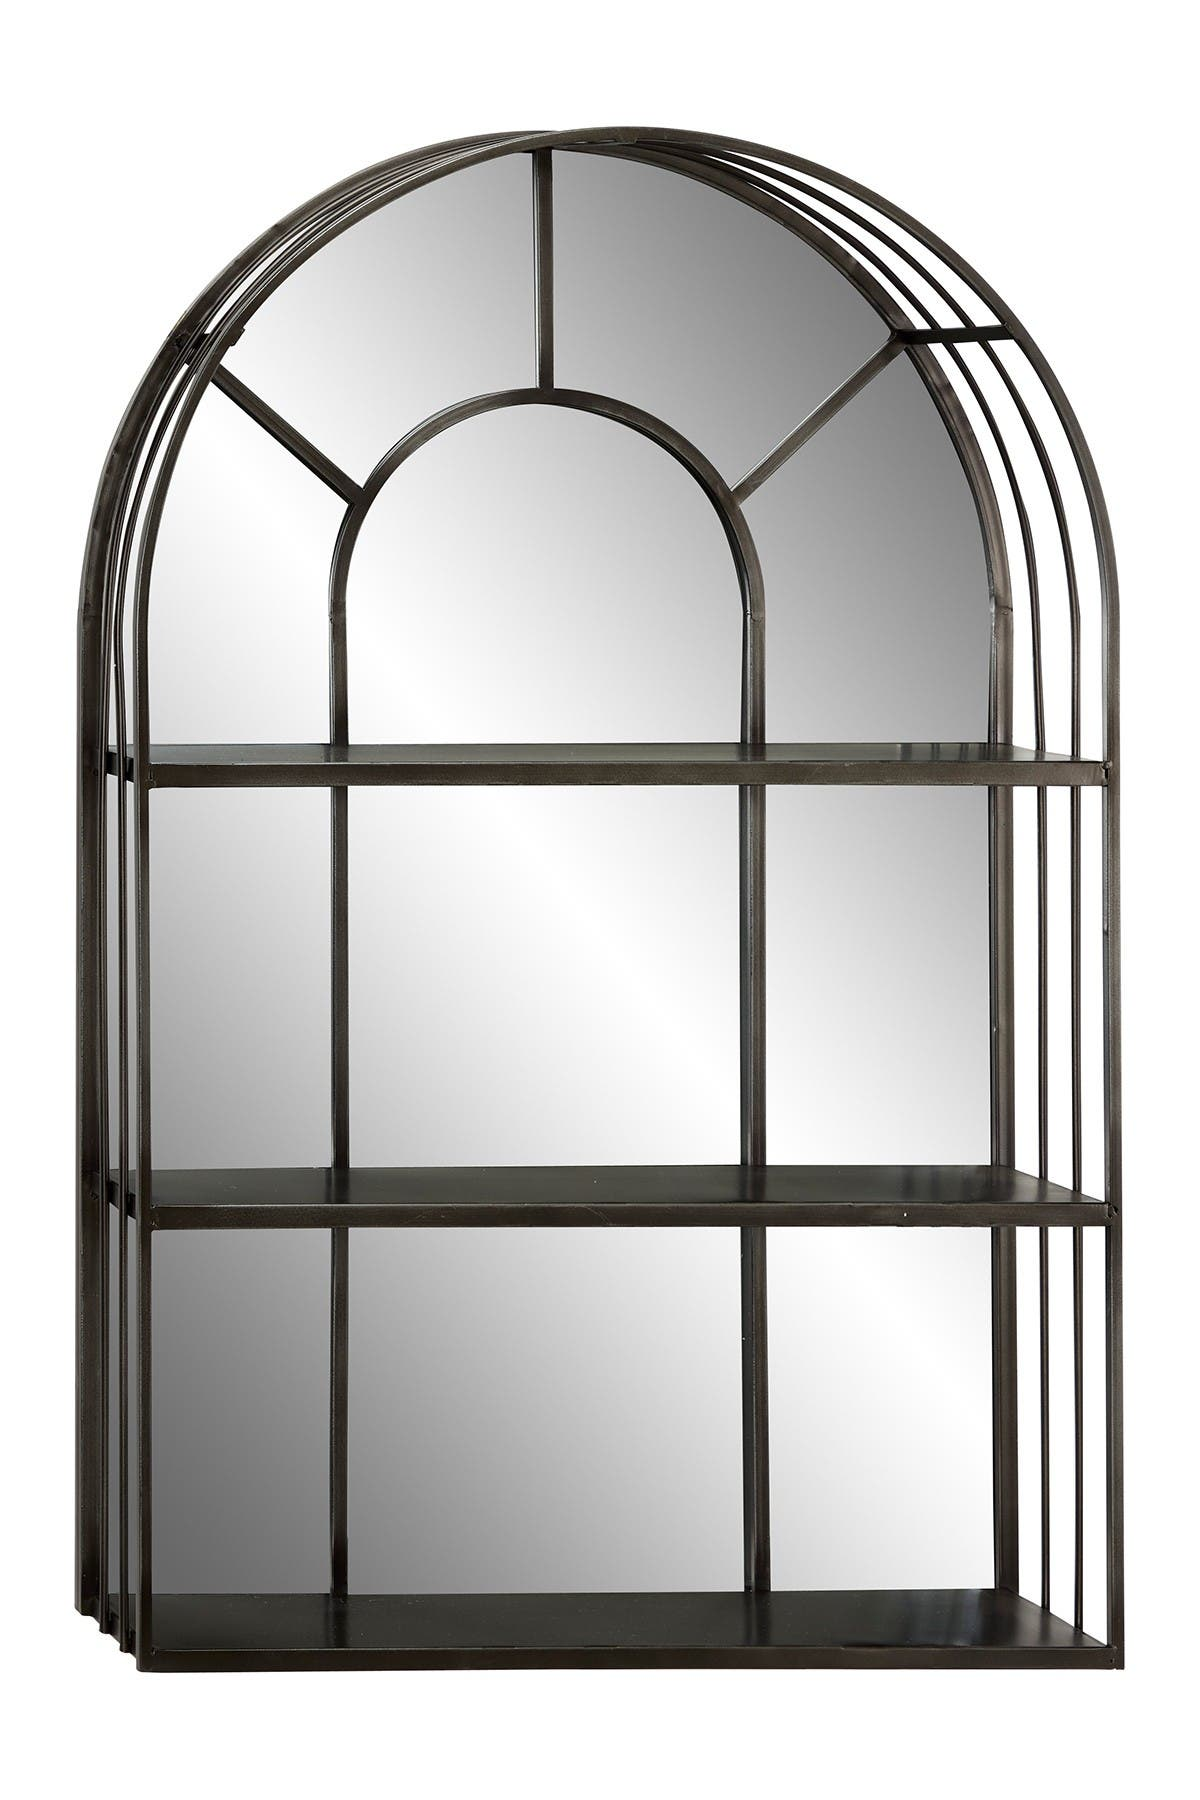 Willow Row Large Industrial Dark Silver Iron Cathedral Window Pane Wall Mirror With Shelves 23 5 X 36 Nordstrom Rack